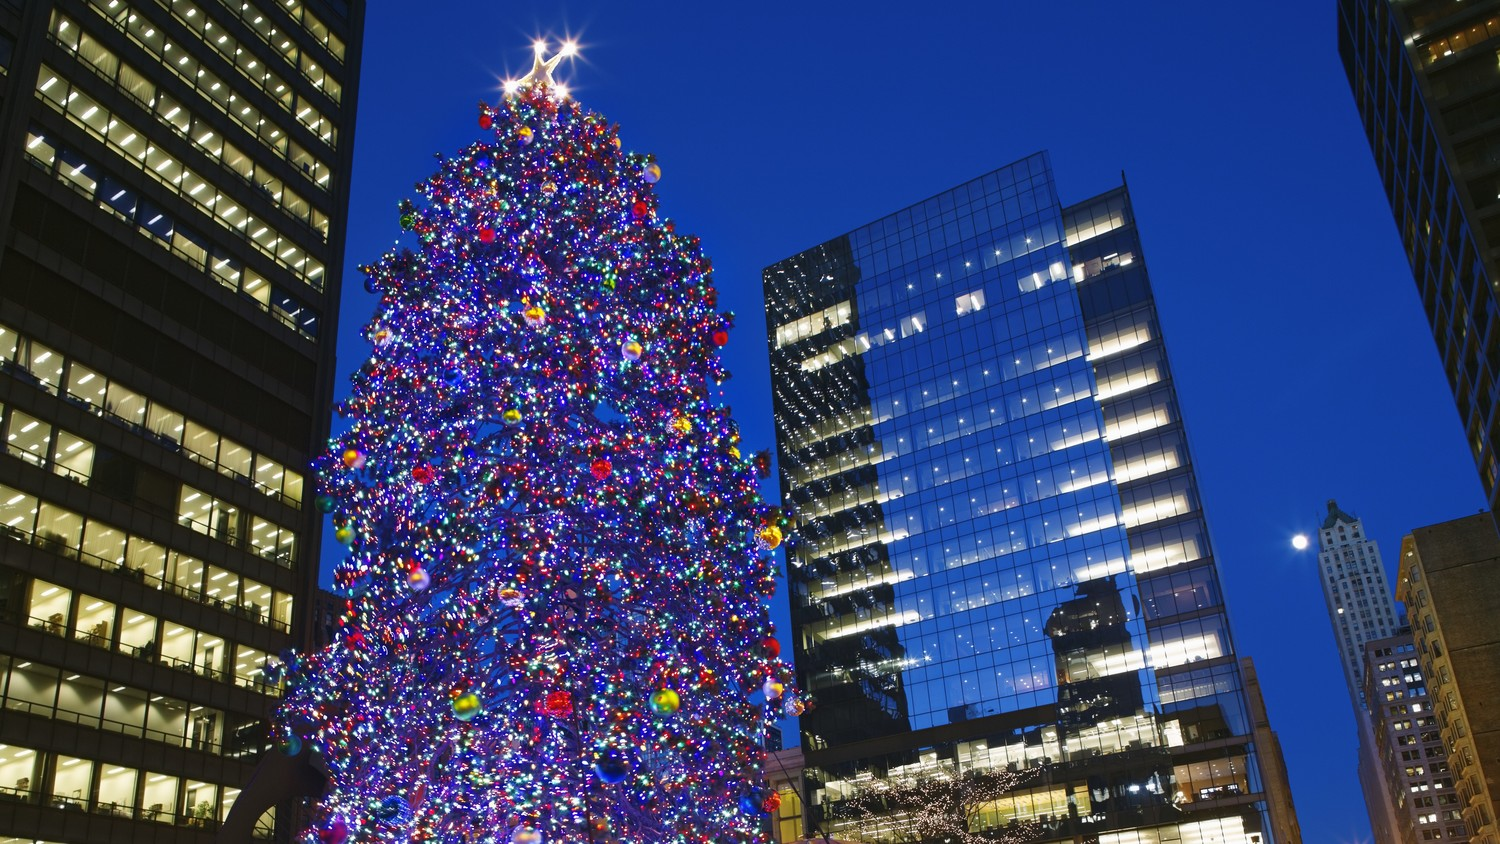 the story behind chicagos christmas tree will warm your heart martha stewart - Christmas Tree In Chicago